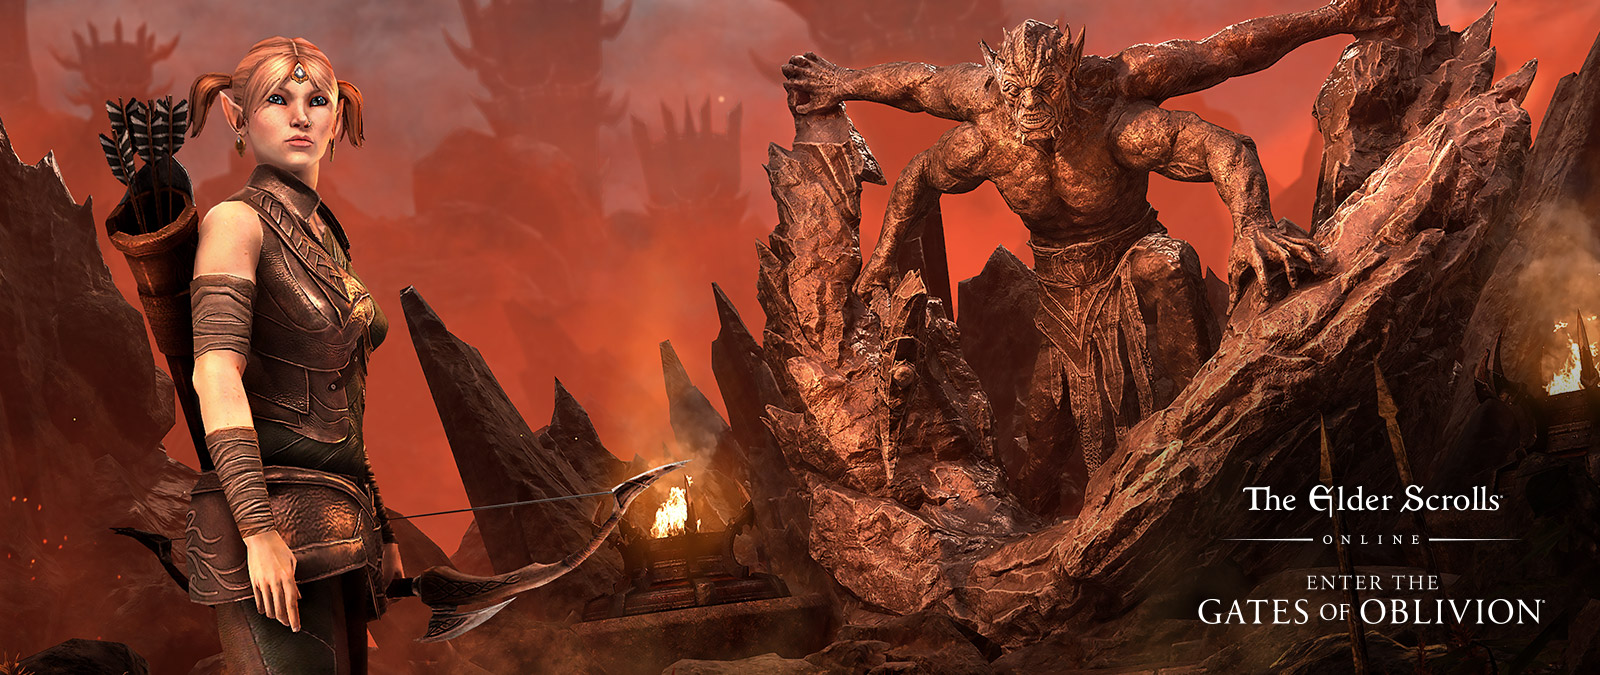 The Elder Scrolls Online: Enter the Gates of Oblivion, Eveli Sharp-Arrow stands in front of a giant four-armed monster climbing over craggy mountain peaks.